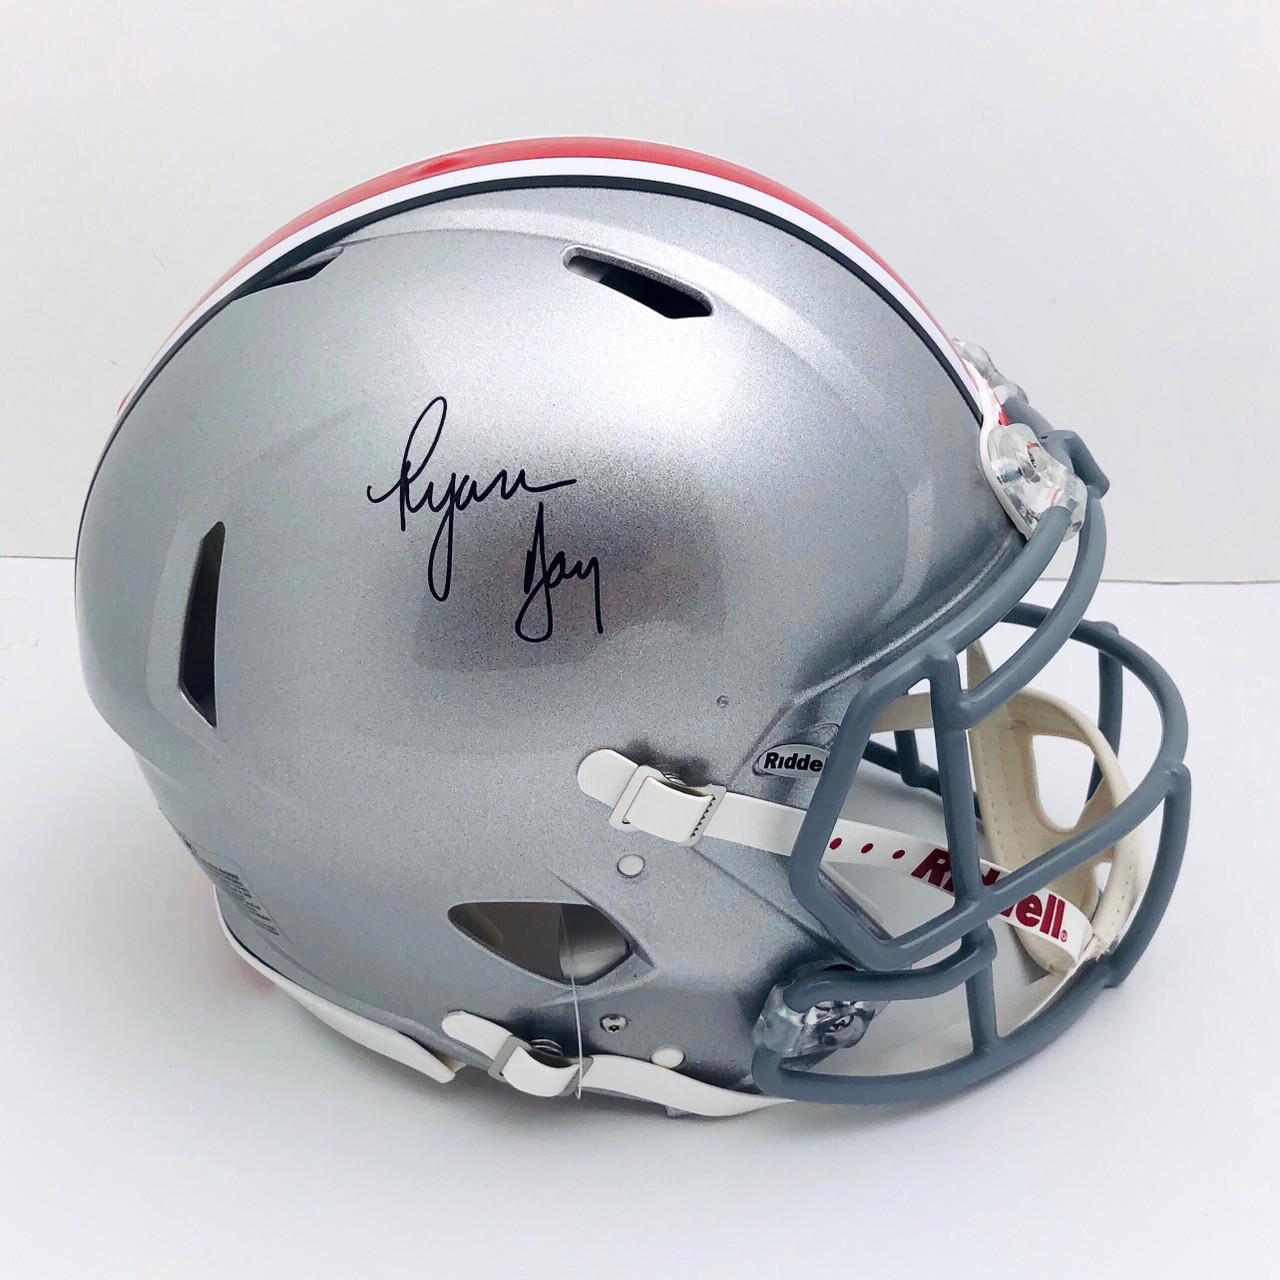 Ryan Day Ohio State Buckeyes Autographed Authentic Helmet - Certified Authentic